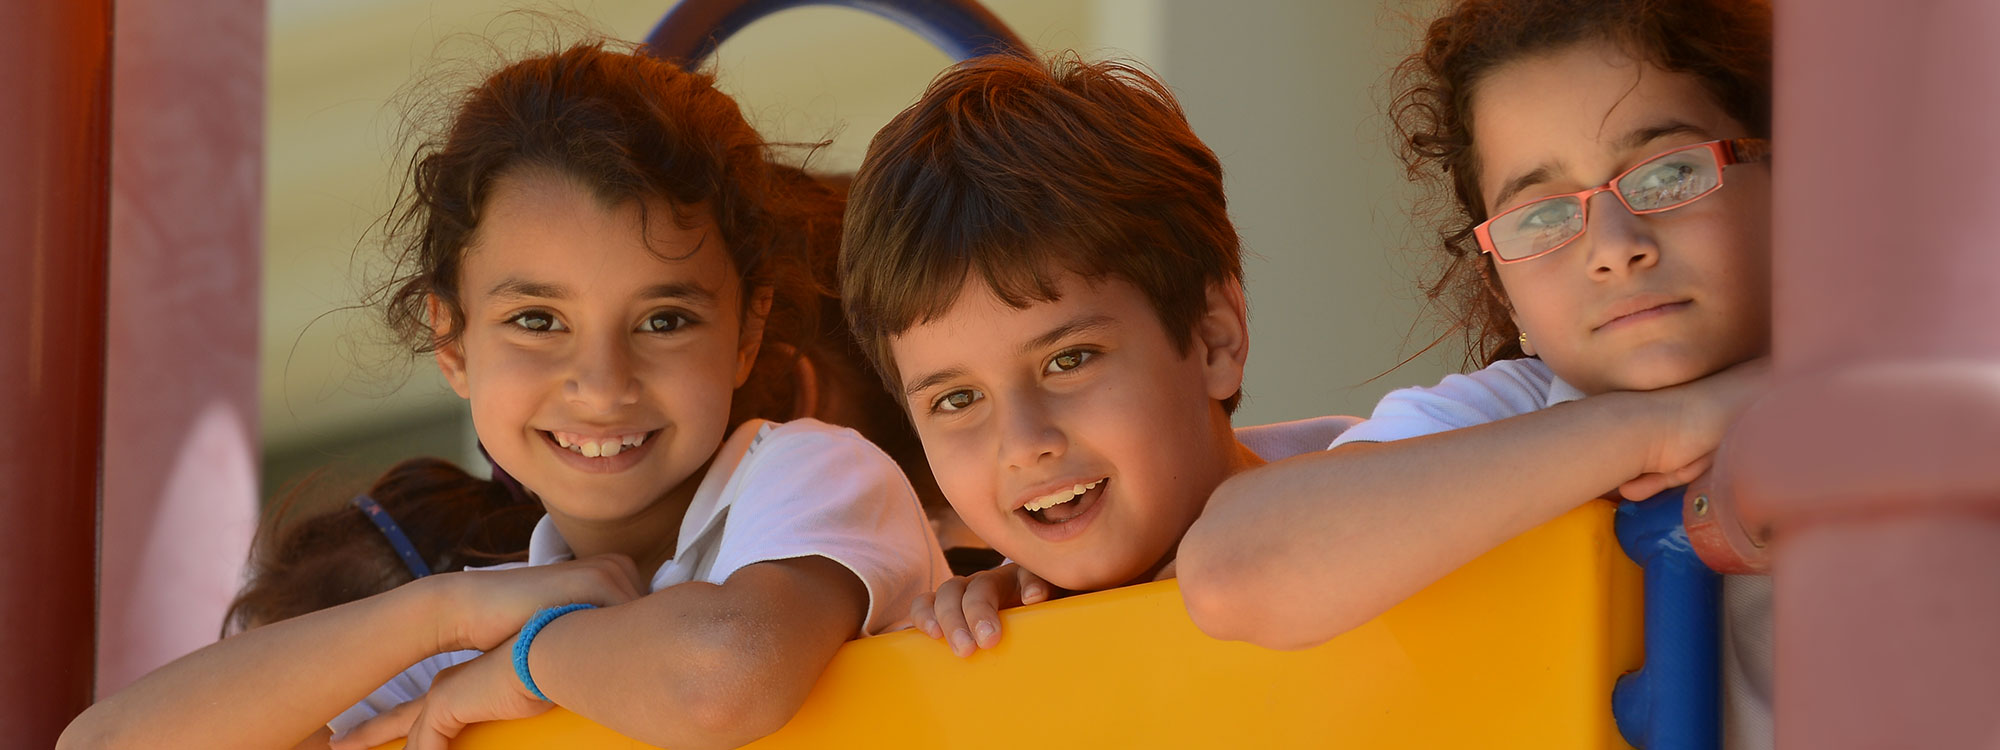 About SABIS®